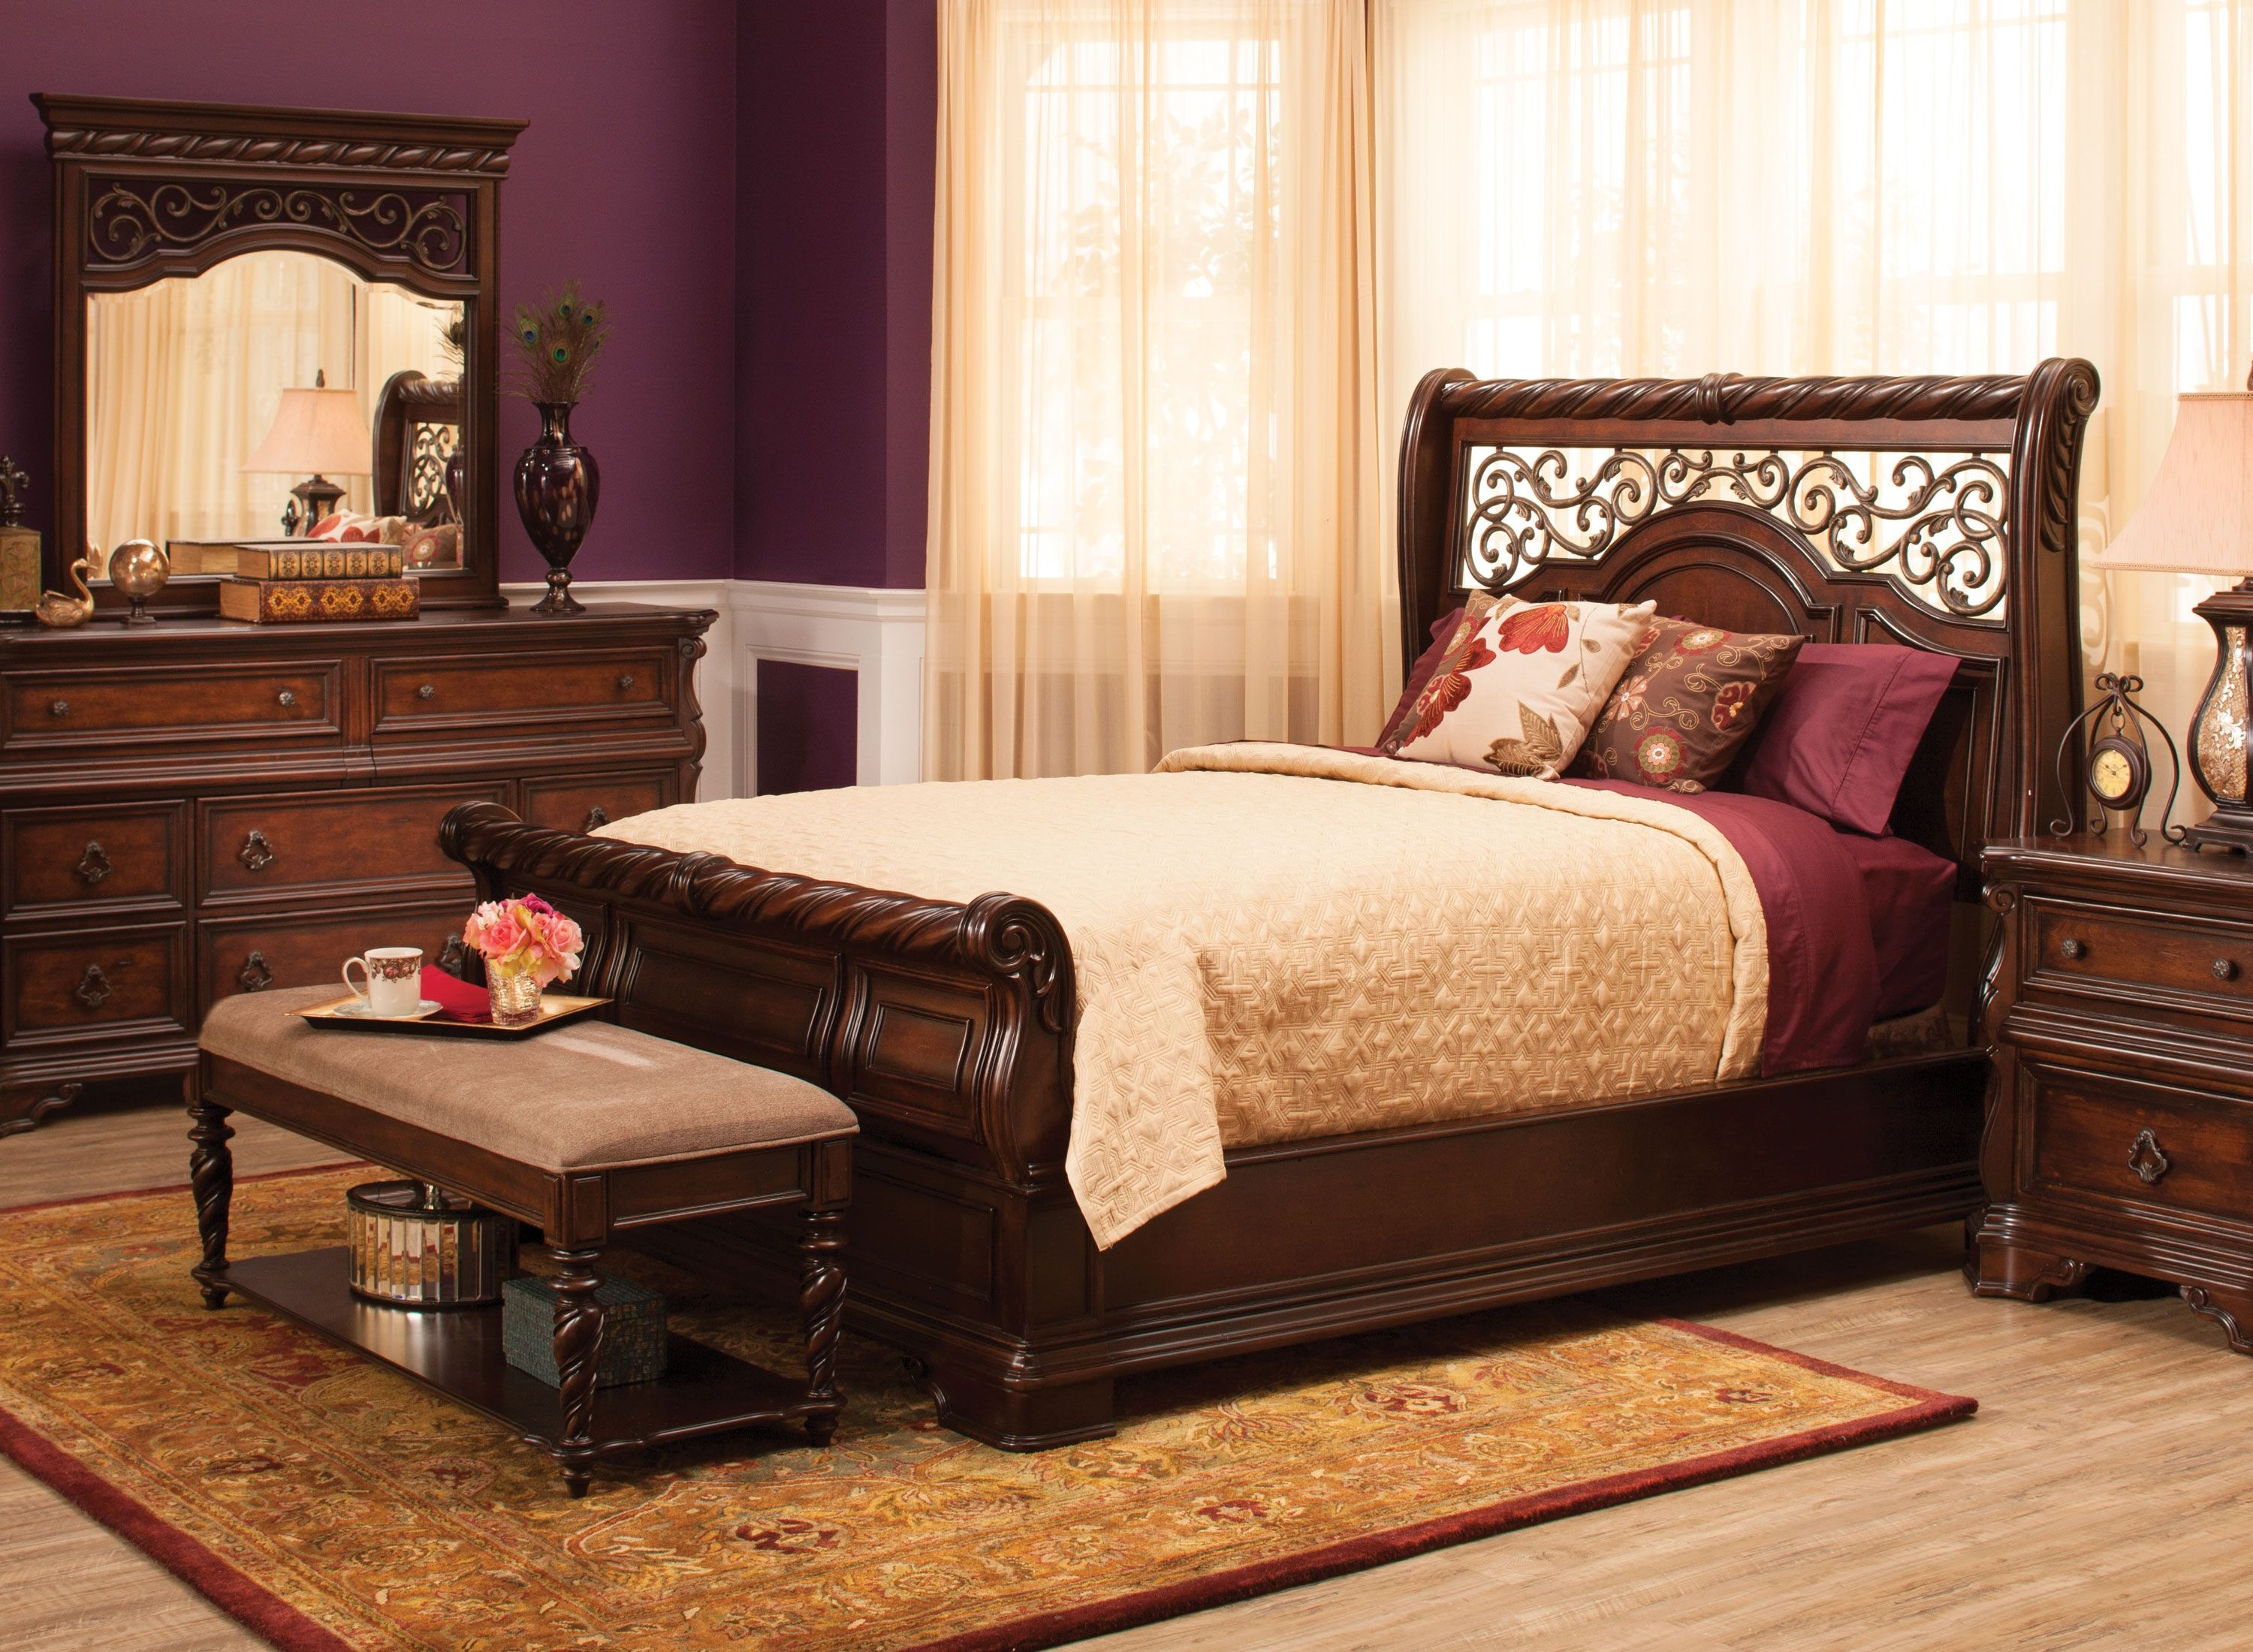 Pin on Bedroom styles and ideas